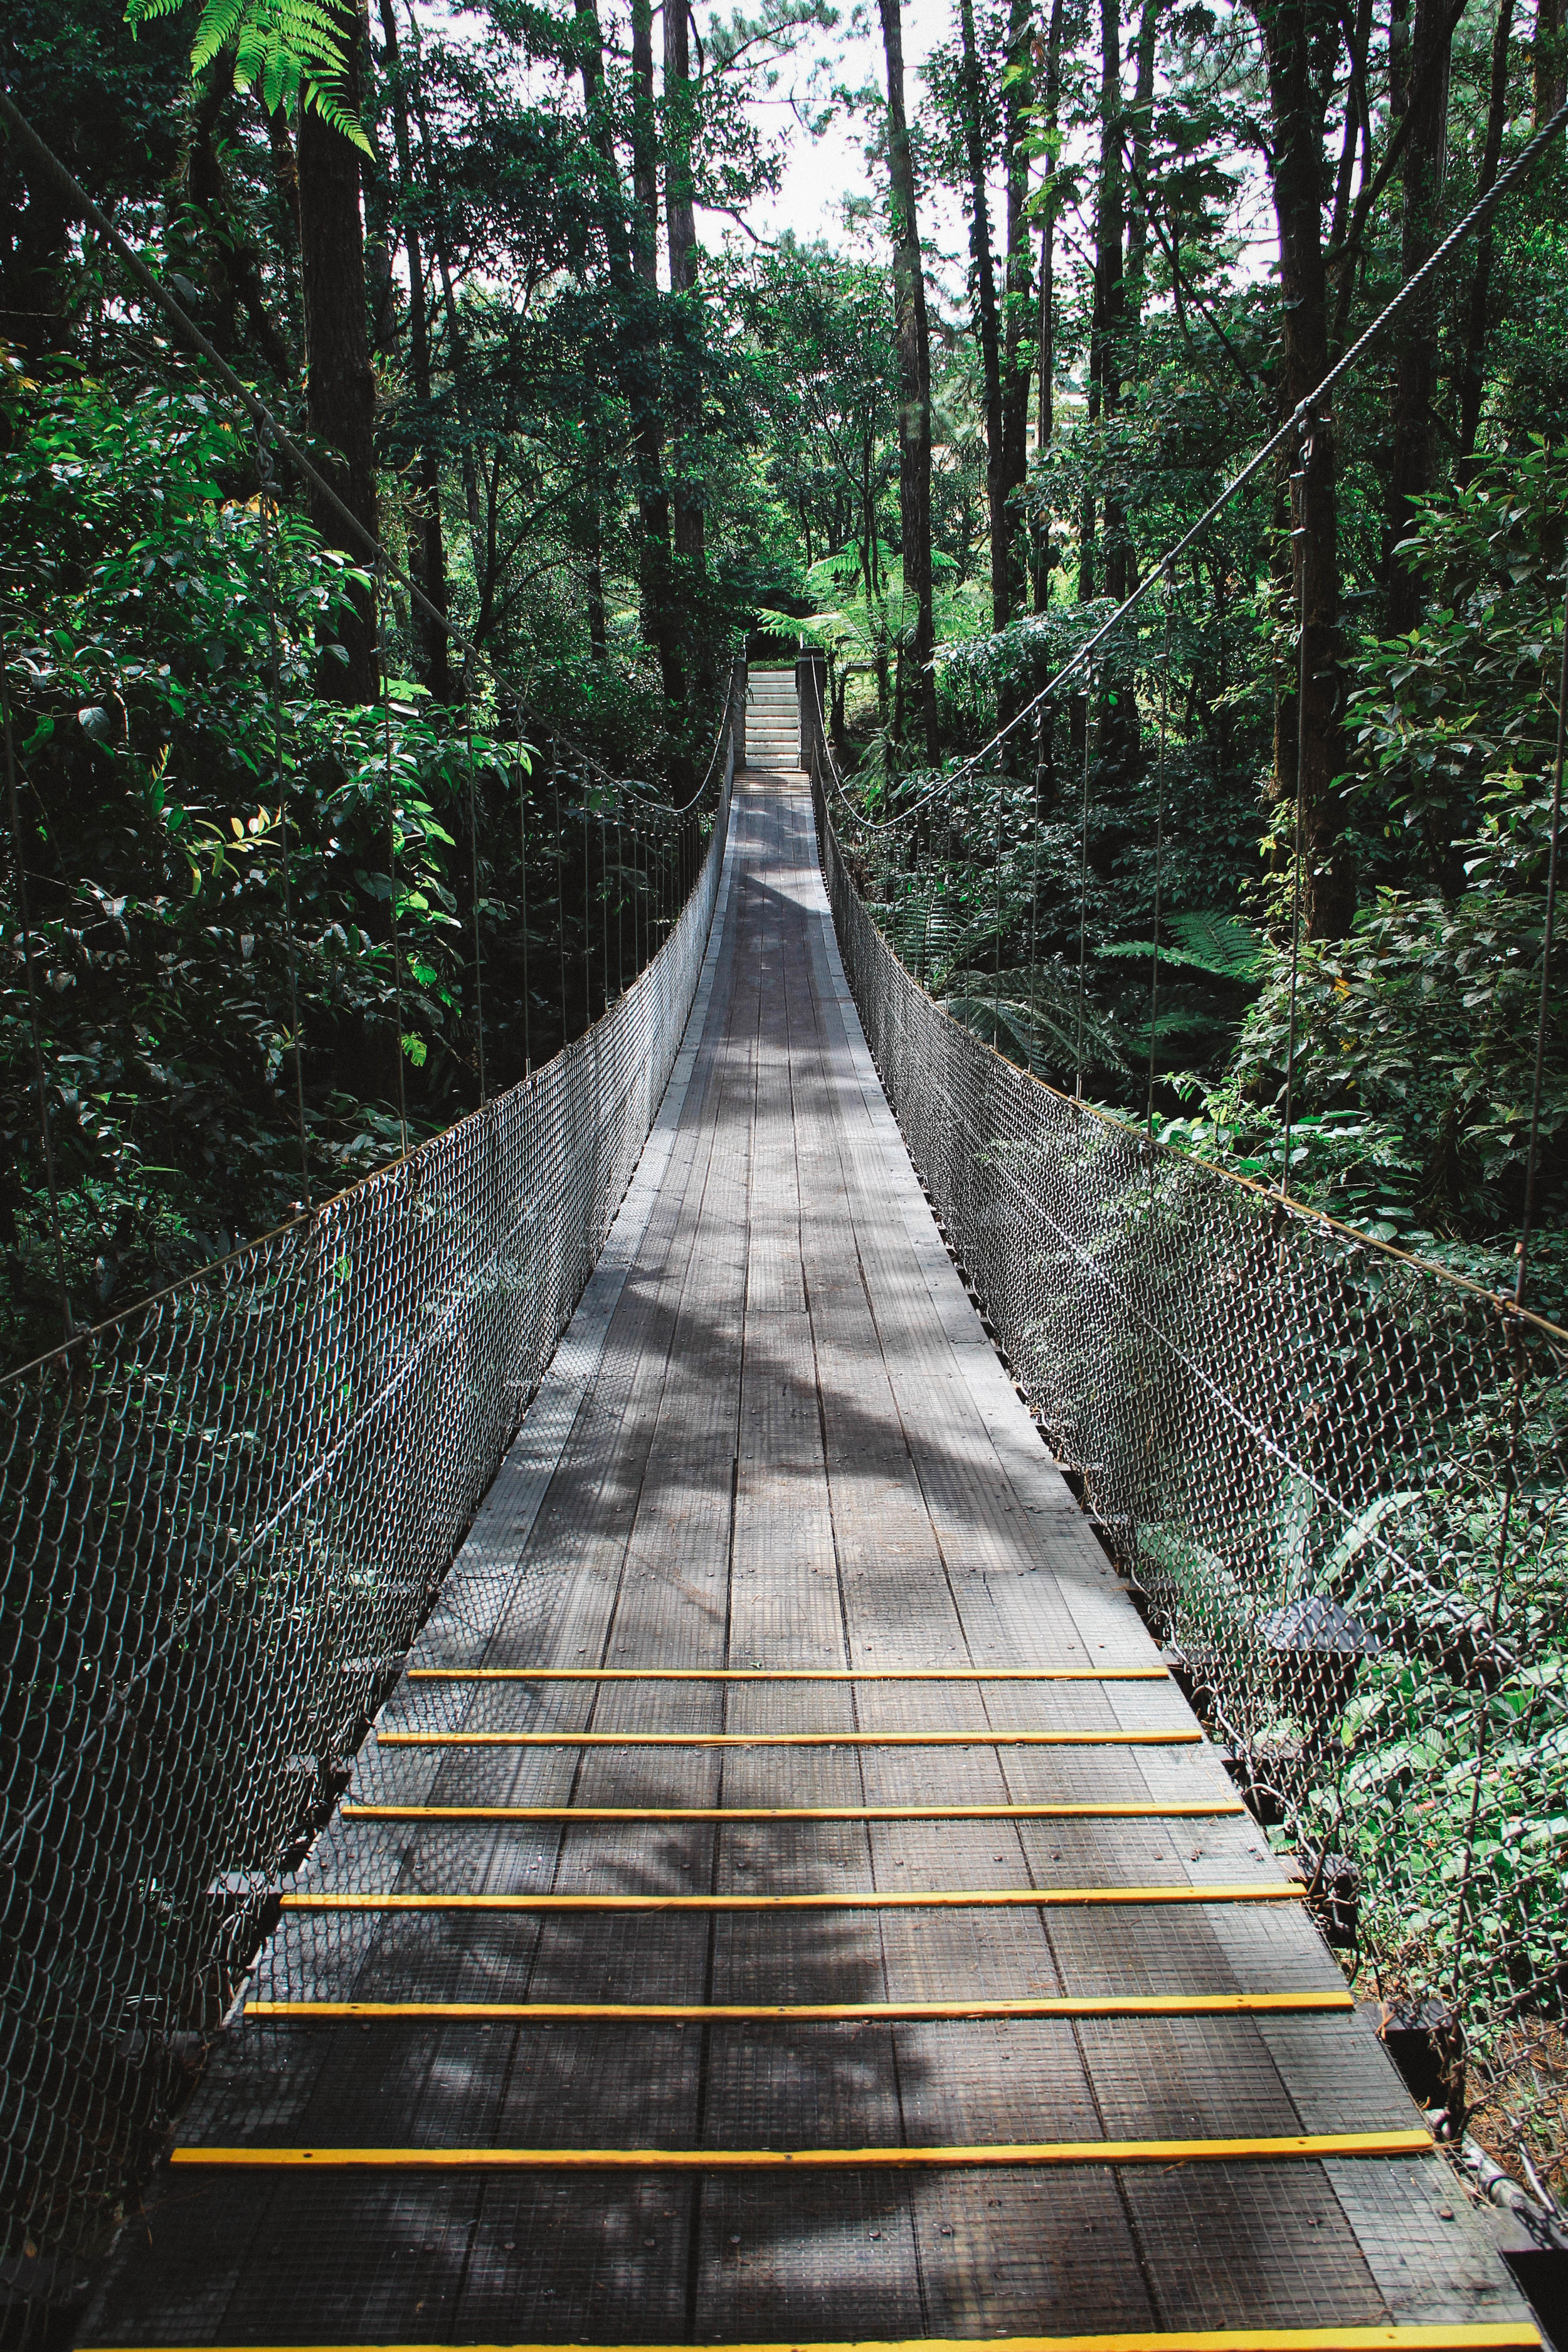 Hanging bridges are all over the the Arenal area. You can even visit a hanging bridge park! This one is on the Arenal Observatory Lodge & Spa property.